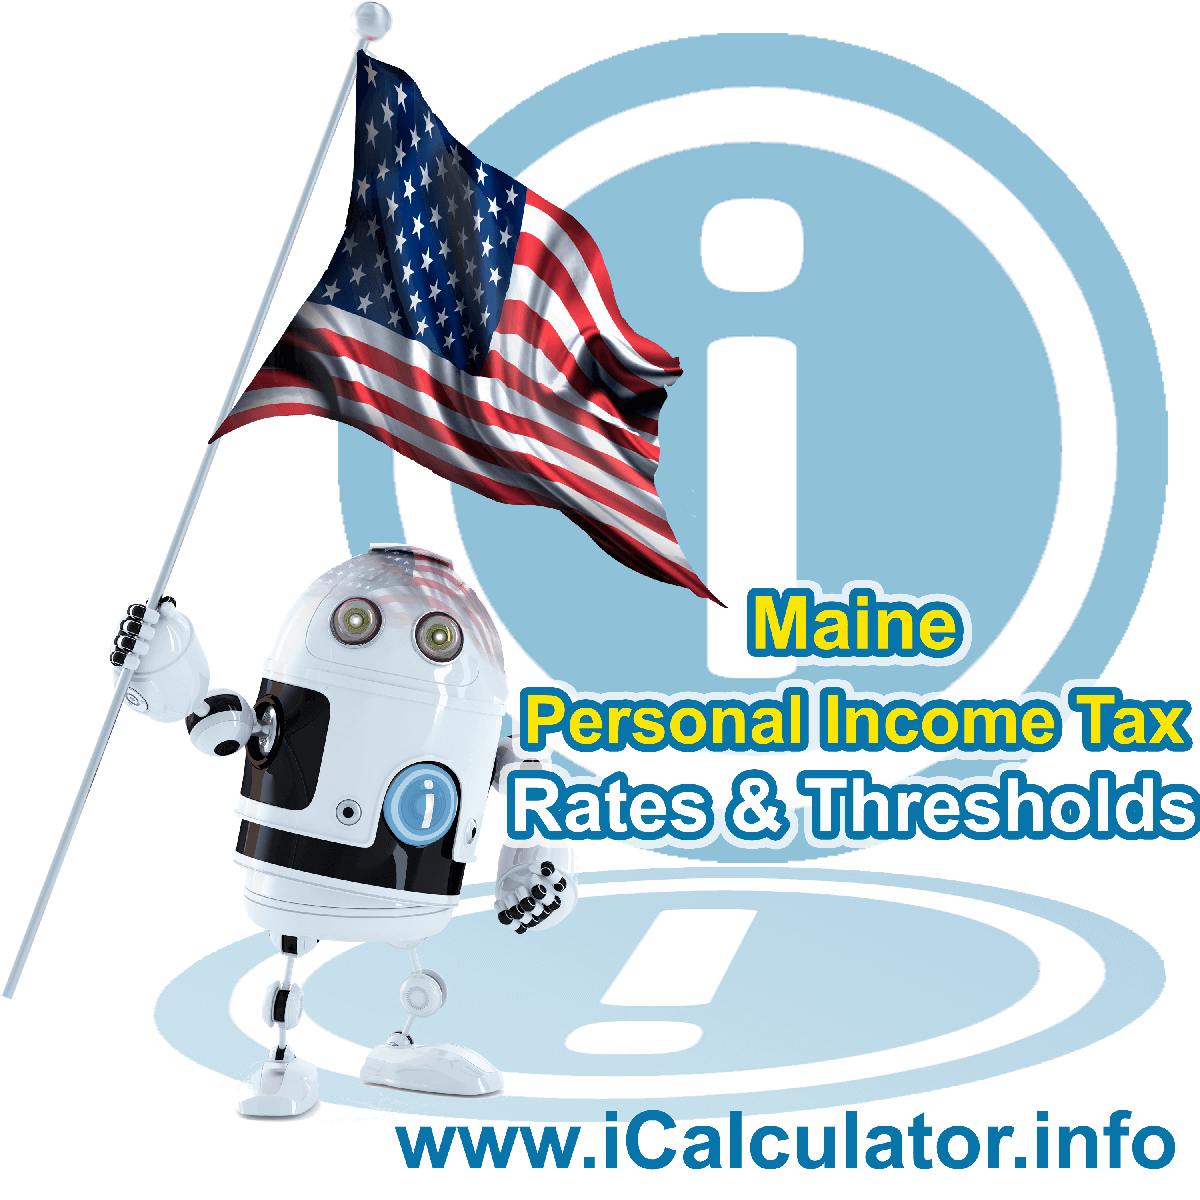 Maine State Tax Tables 2020. This image displays details of the Maine State Tax Tables for the 2020 tax return year which is provided in support of the 2020 US Tax Calculator